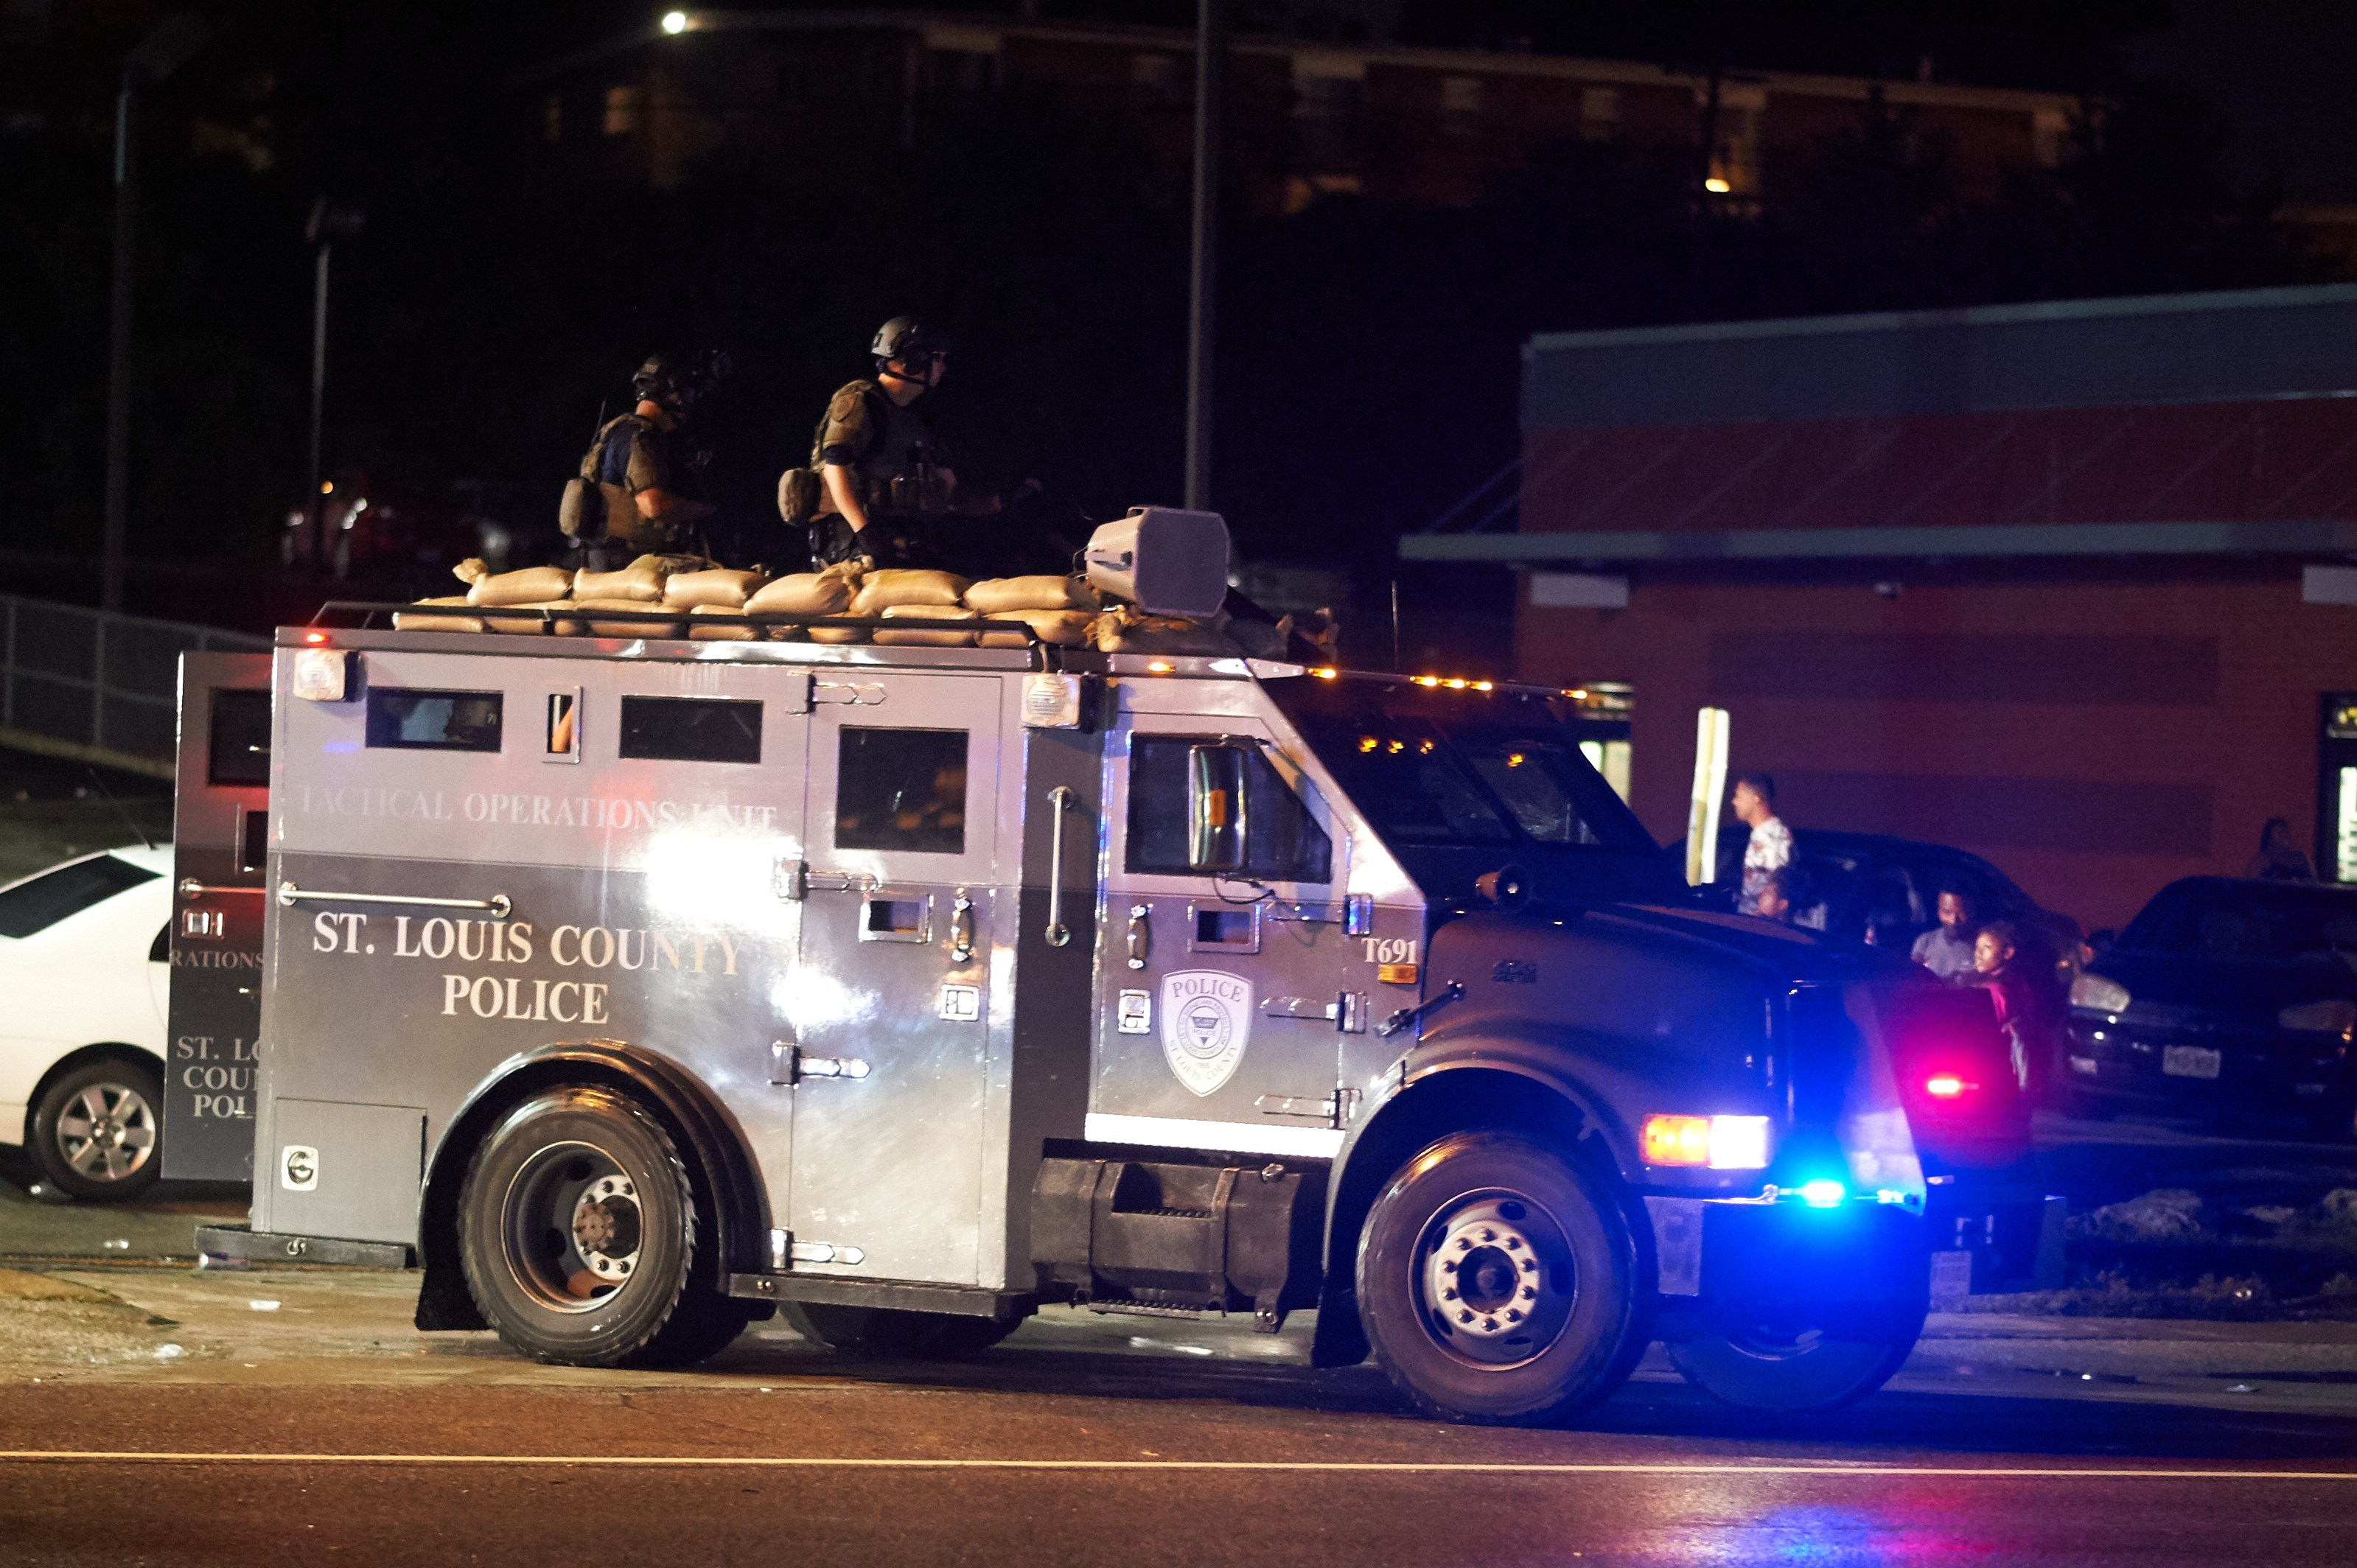 St. Louis County  police officers respond in an MRAP vehicle after shots were fired during a protest march on August 9, 2015 on West Florissant Avenue in Ferguson, Missouri. (Getty)